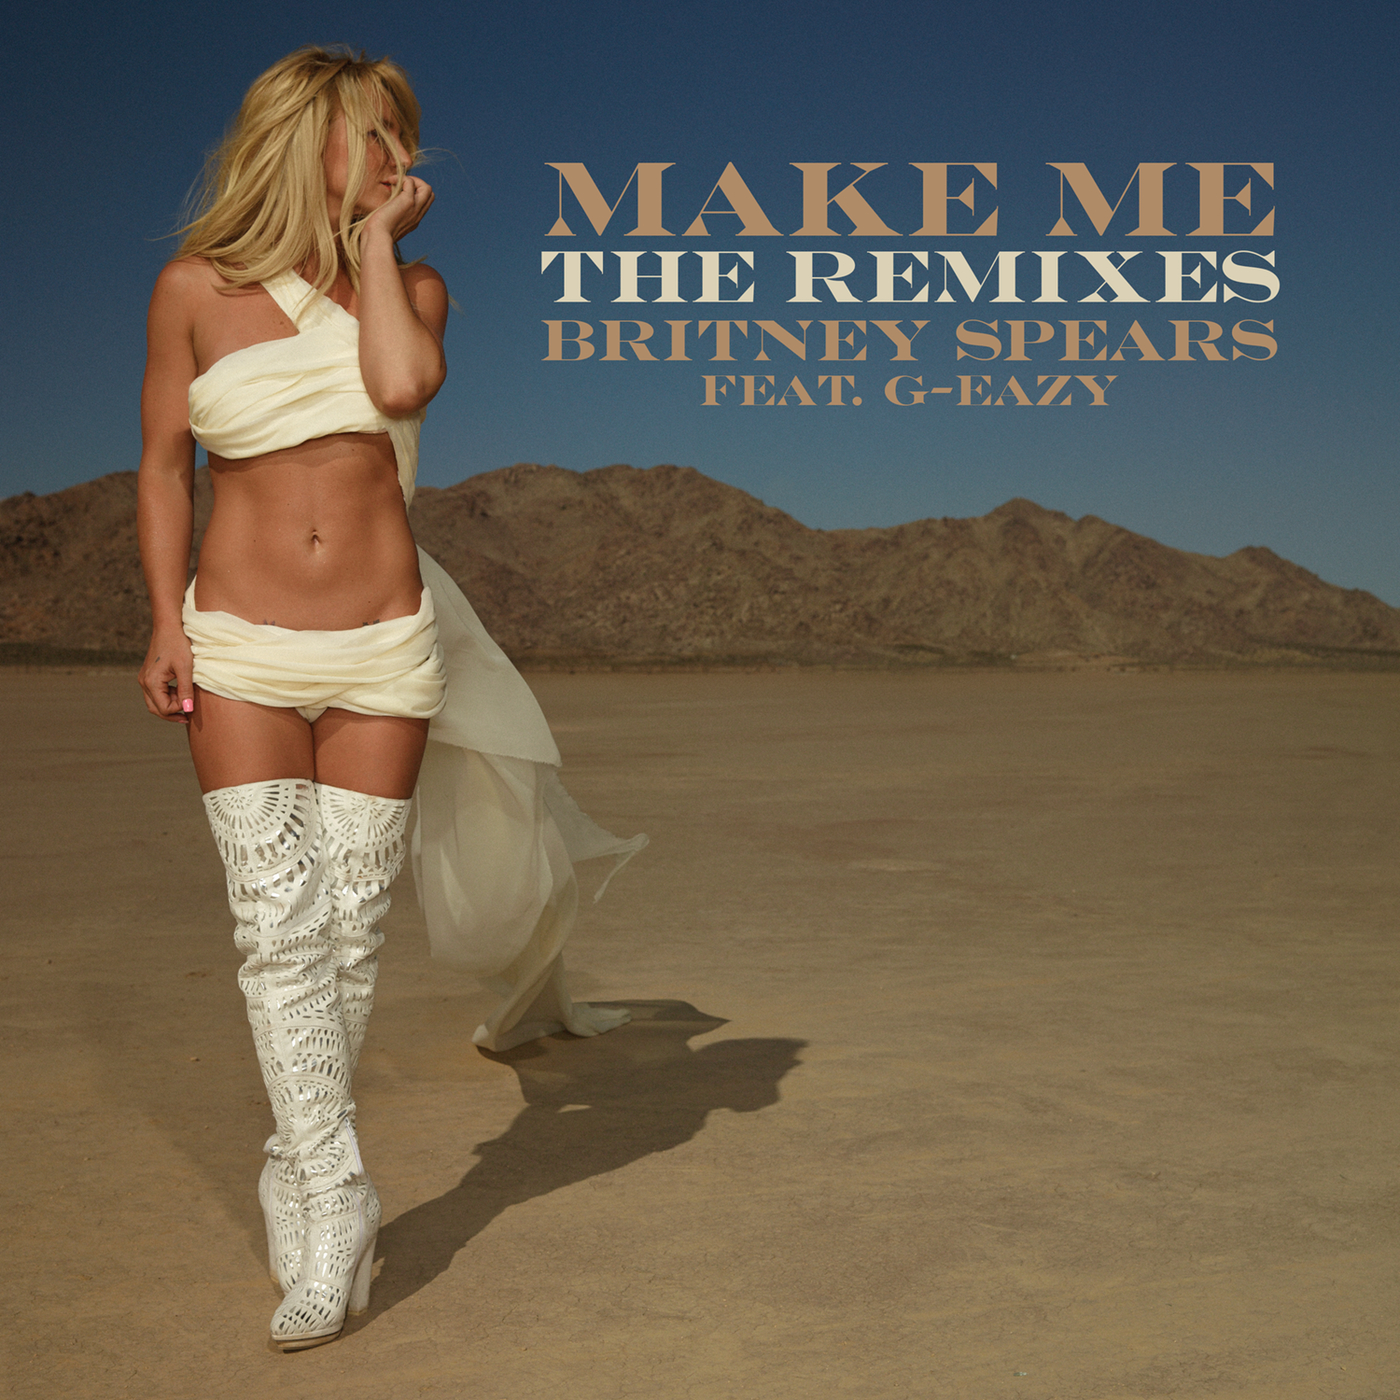 Britney Spears - Make Me... (Feat. G-Eazy) [The Remixes]